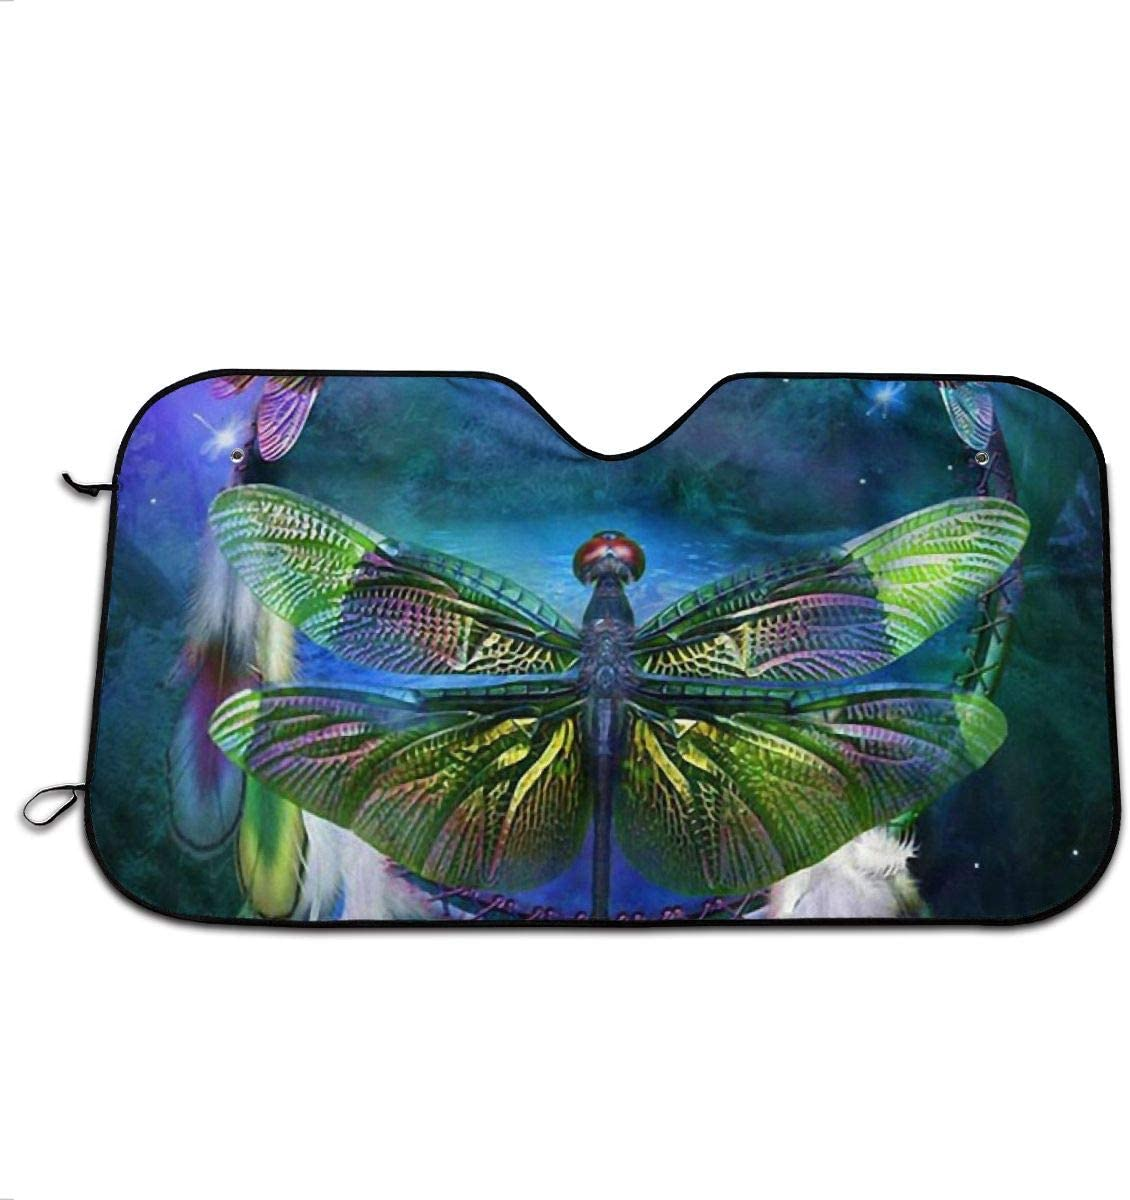 TPSXXY-WS Floral Dragonfly Windshield Sunshade for Car SUV Truck Foldable UV Ray Reflector Front Window Sun Shade Visor Shield Cover